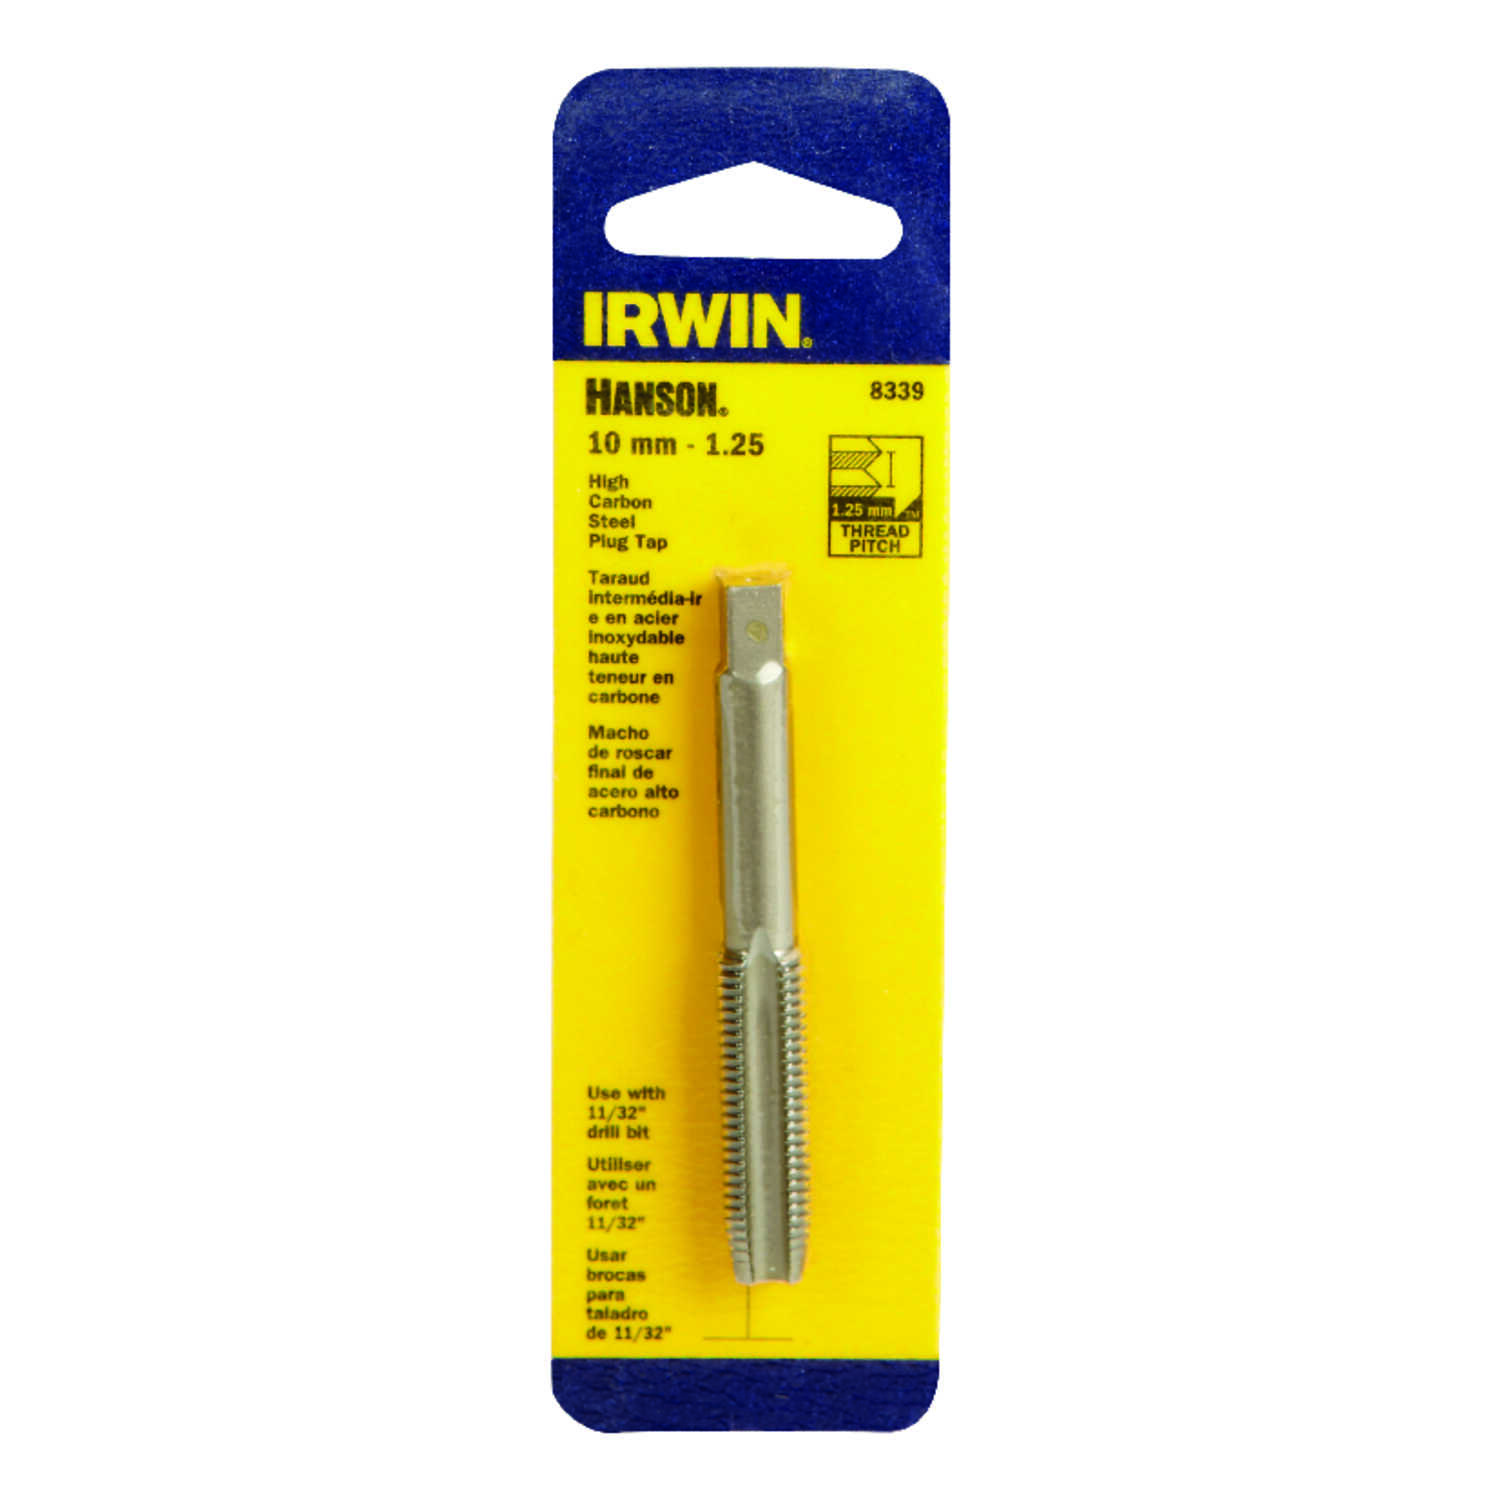 Irwin  Hanson  High Carbon Steel  Metric  Plug Tap  10mm-1.25  1 pc.